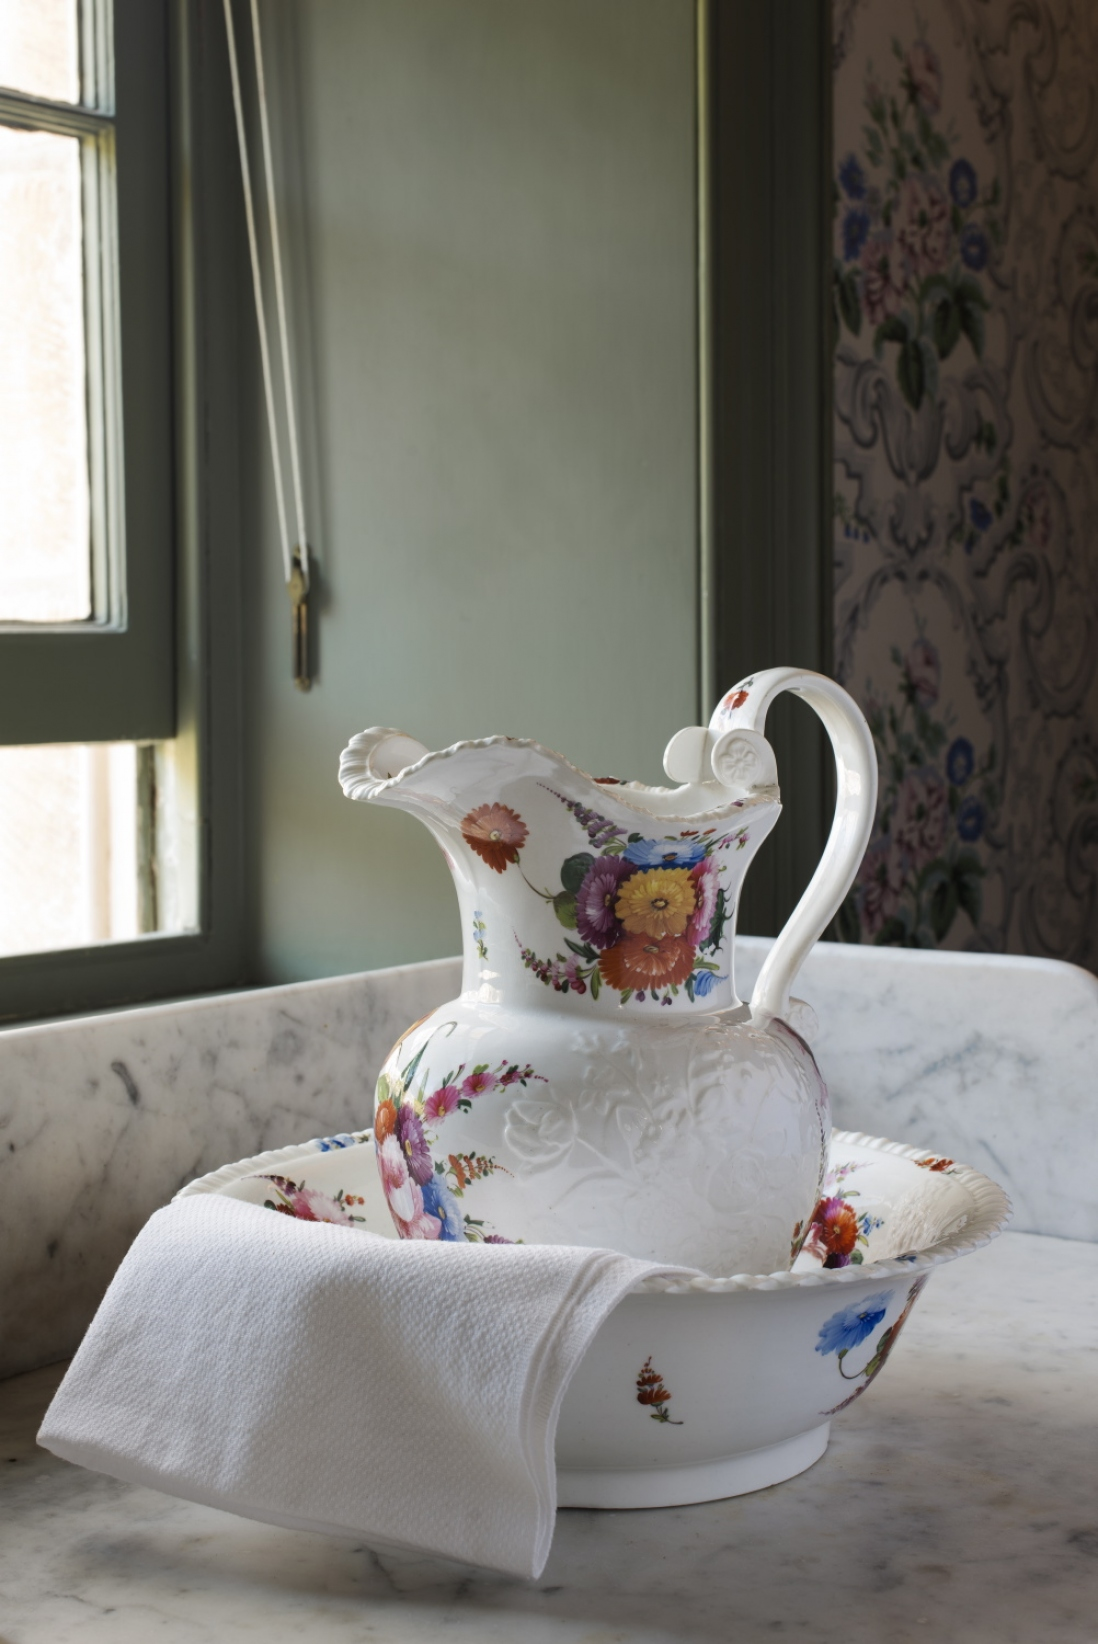 Floral-patterned white wash basin with jug and cloth inside, in front of sash window.